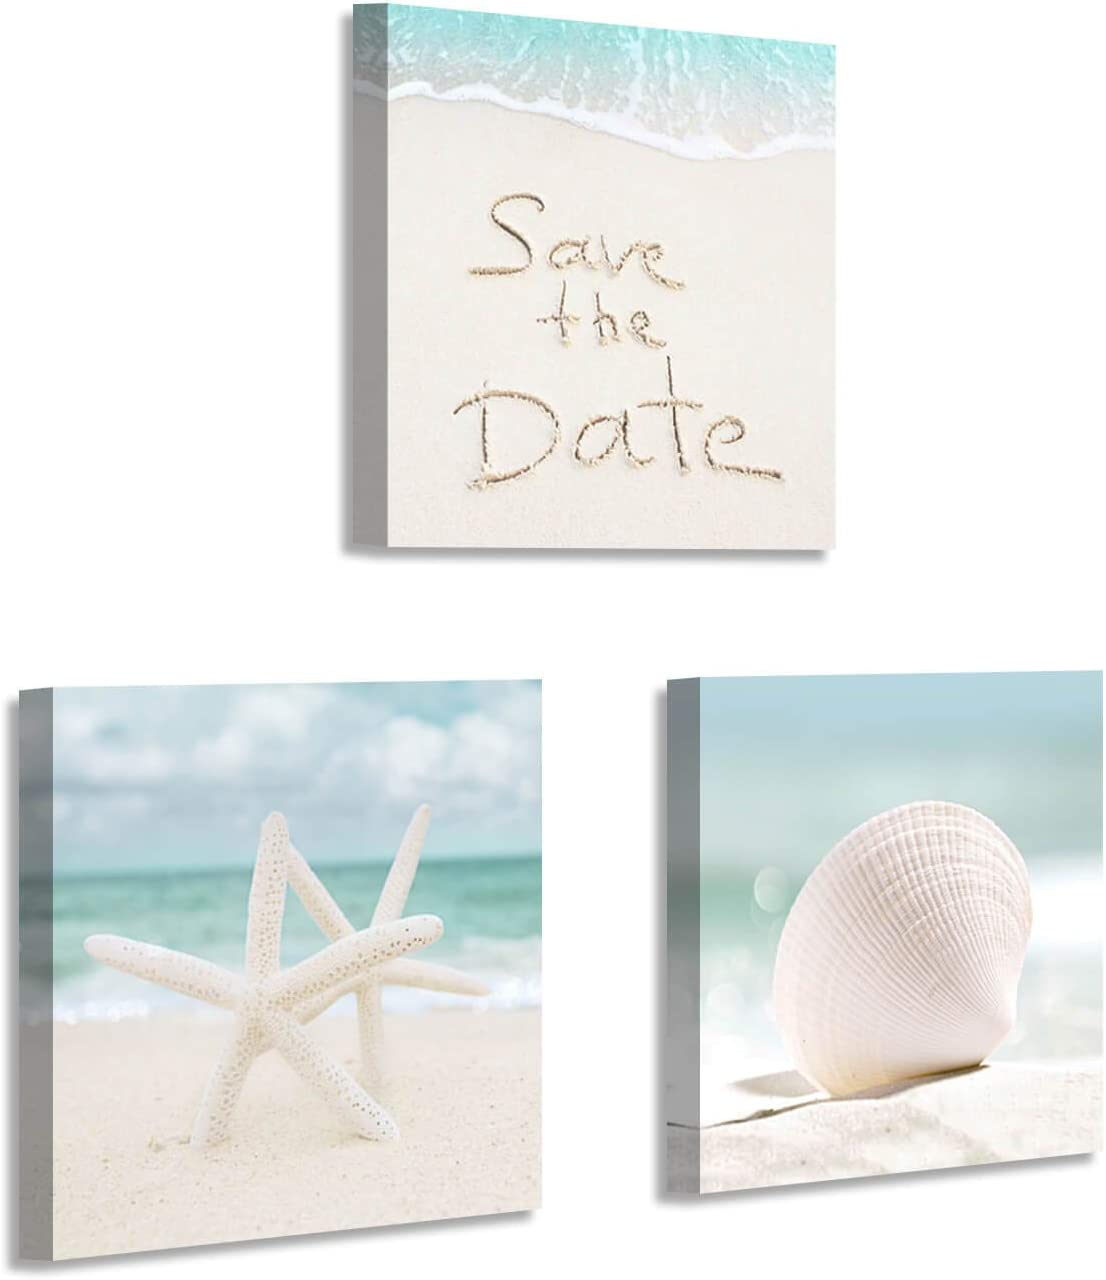 Seaside Beach Canvas Wall Art: Starfish and Seashell Artwork Picture Print on Canvas for Bedroom ( 12